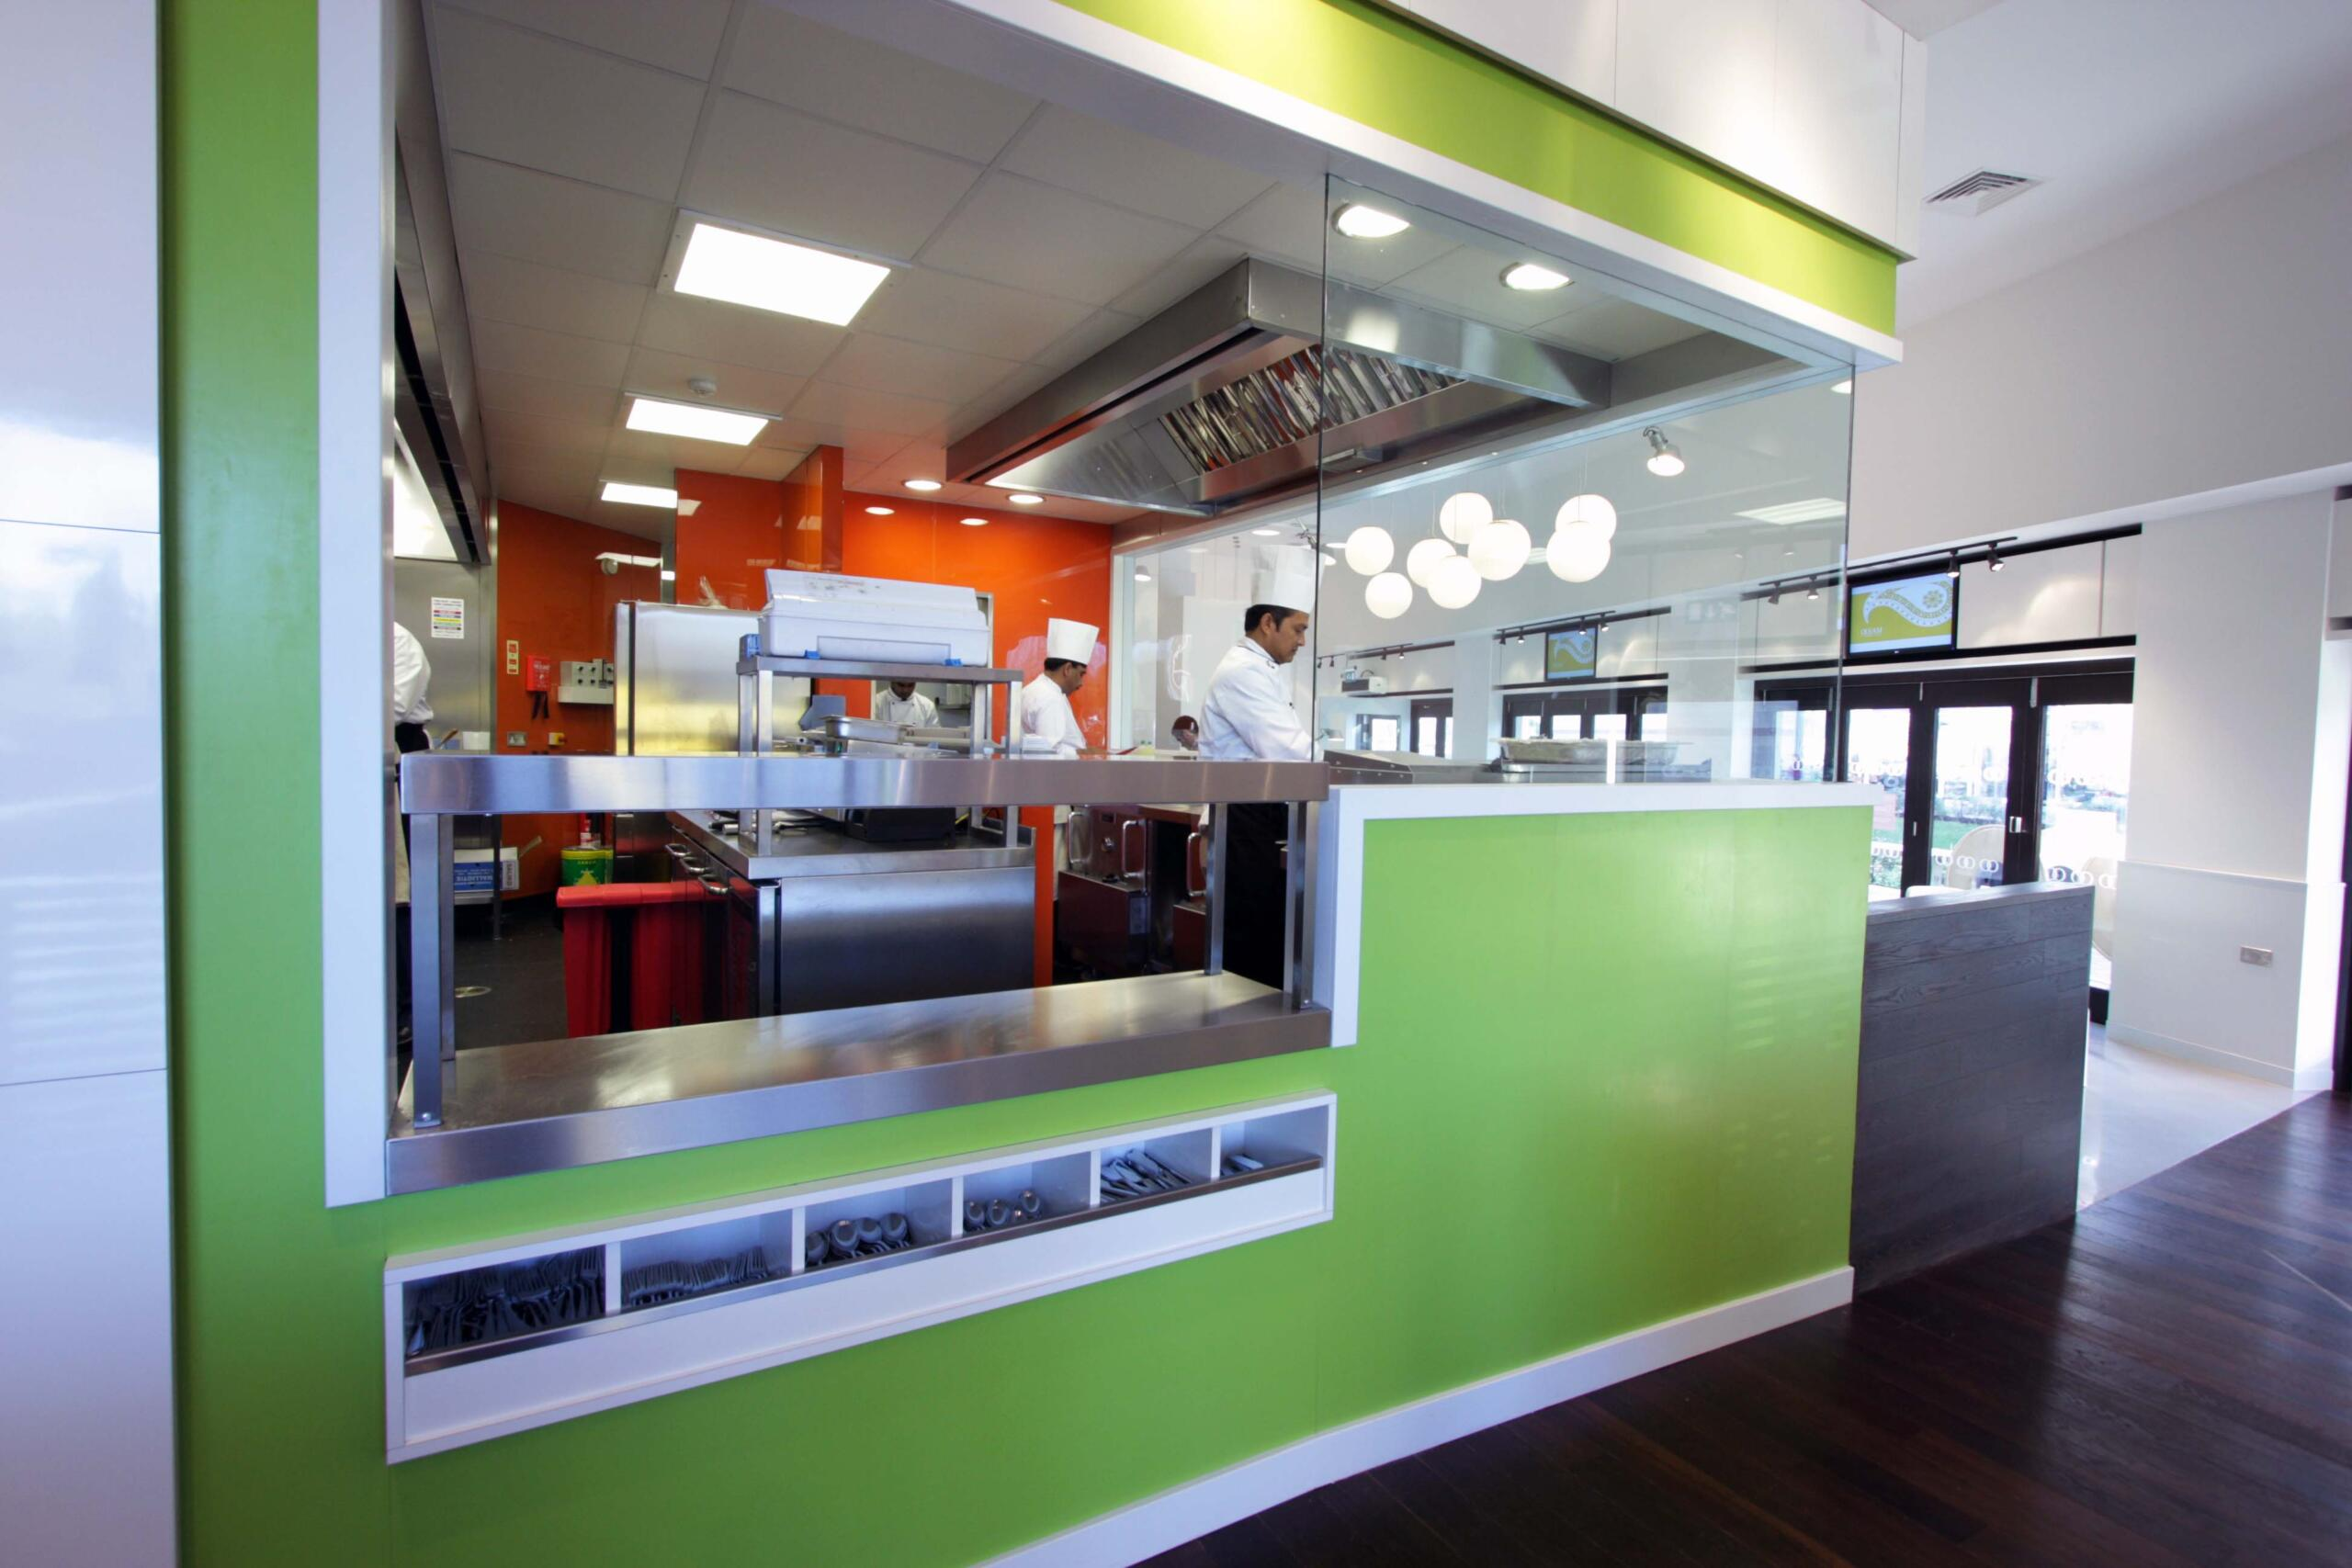 Restaurant Kitchen Design At Oojam By Space Catering